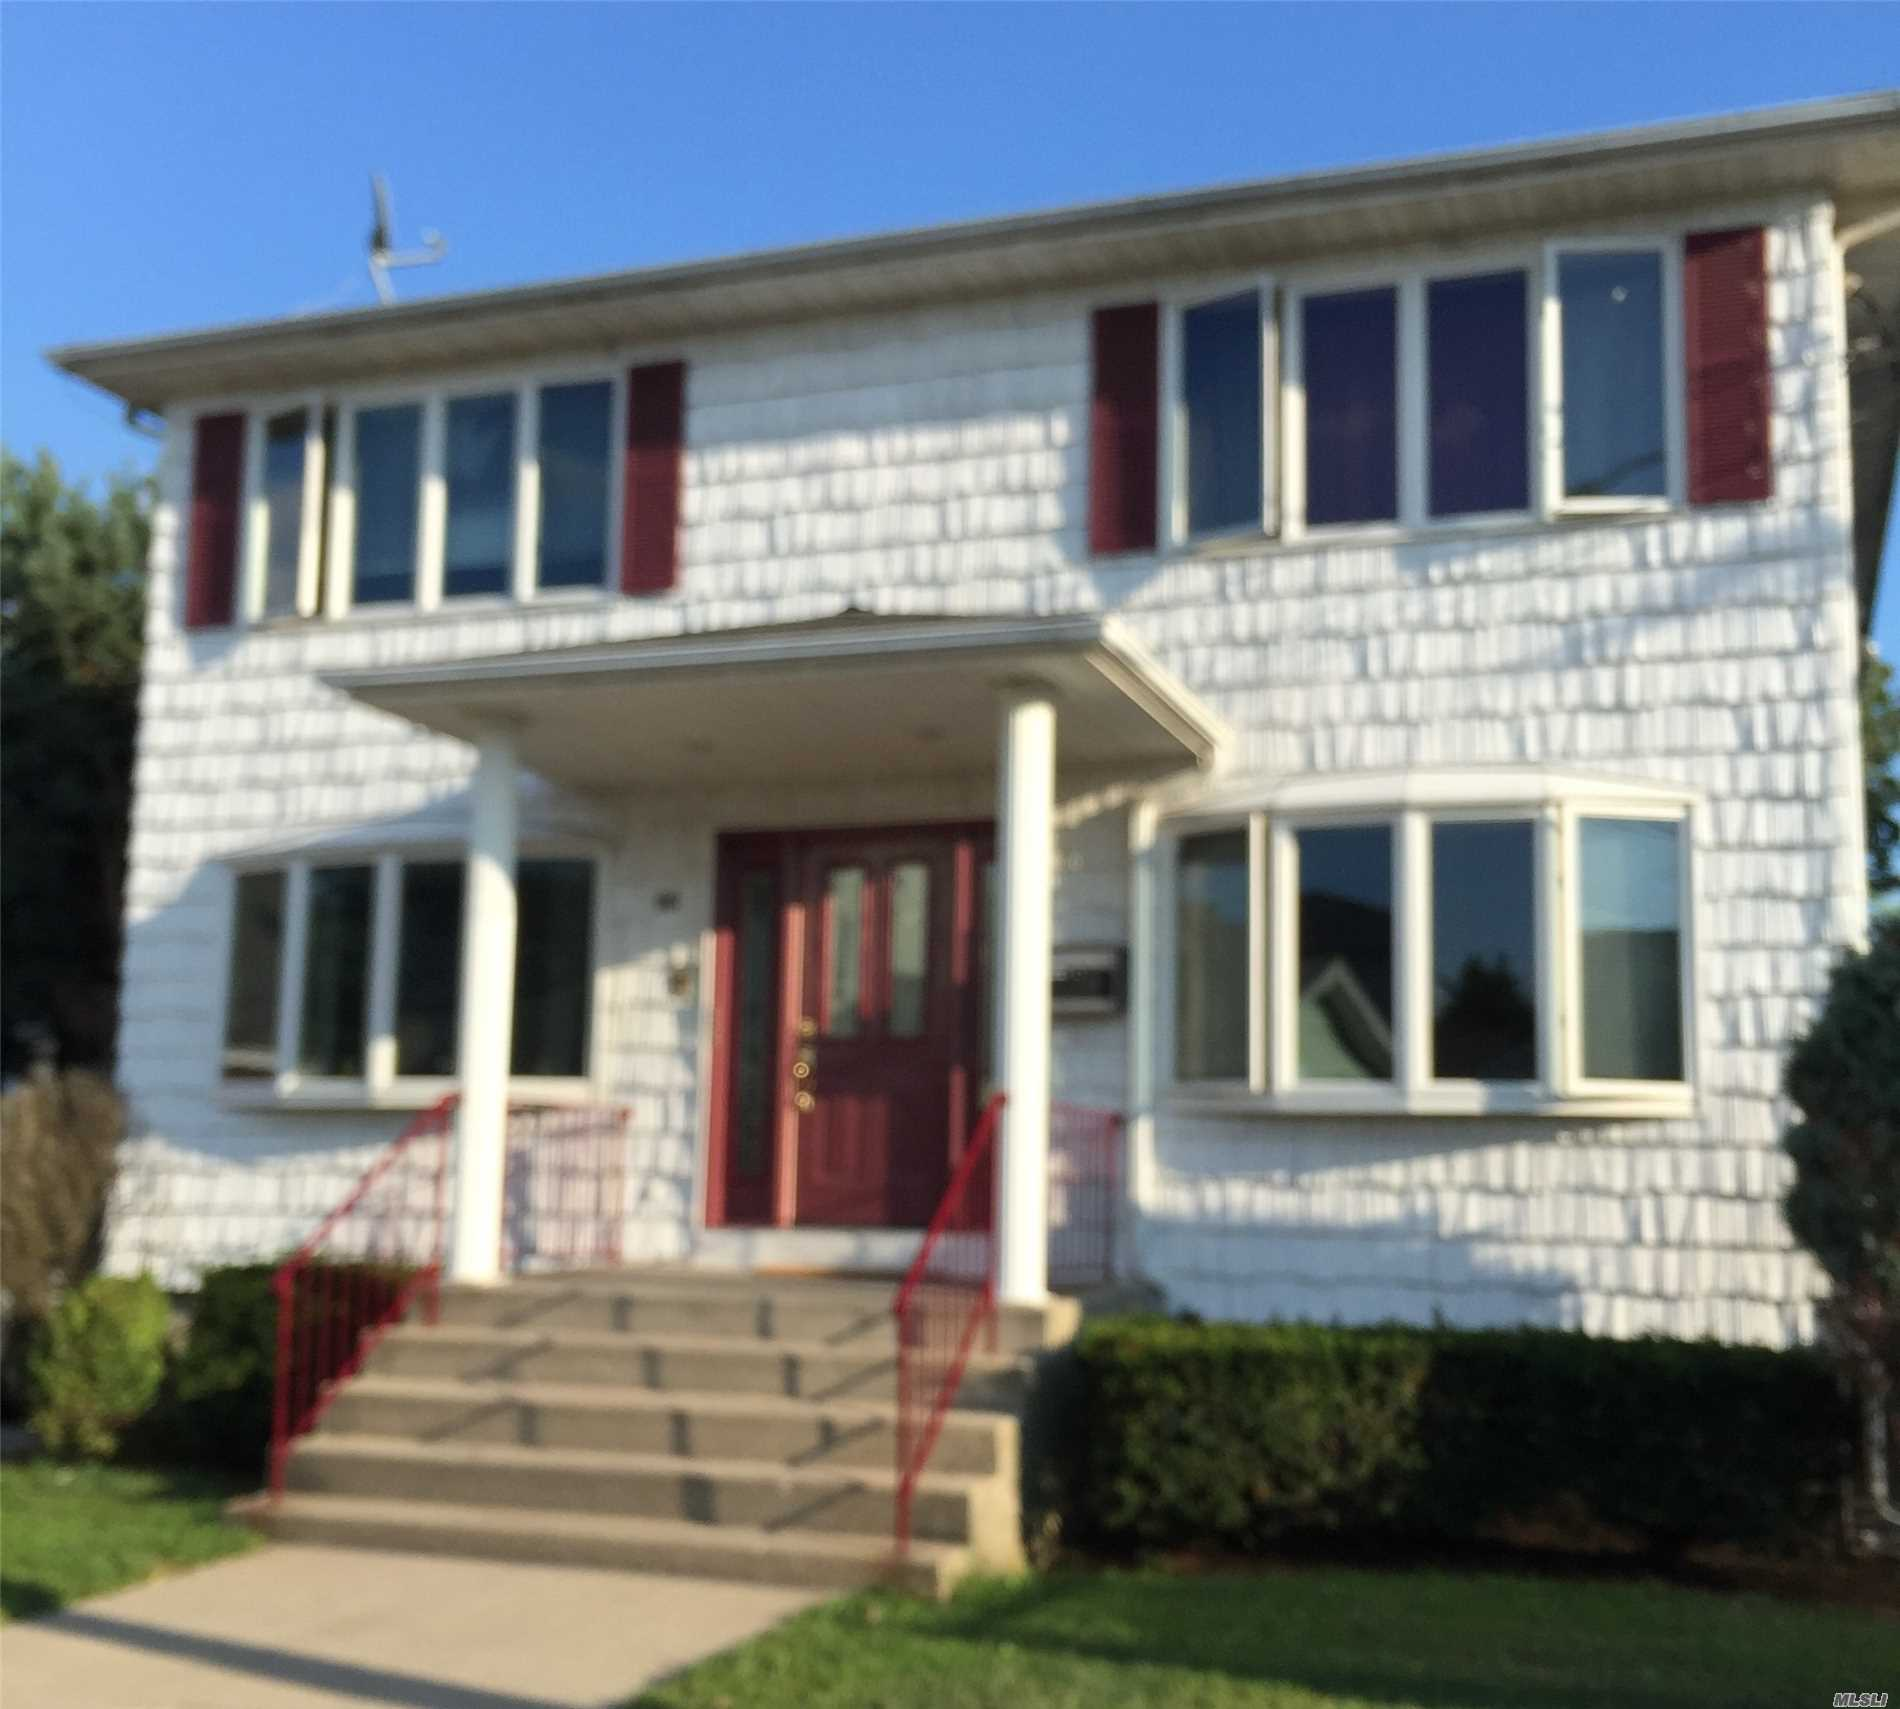 50 & Over clean, bright 1 Bedroom Apartment, recently updated Bath & Kitchen, Laundry on premises. Parking in municipal lot in front of building. Landlord pays all parking permits. Walking to RR, shopping, restaurants, houses of worship